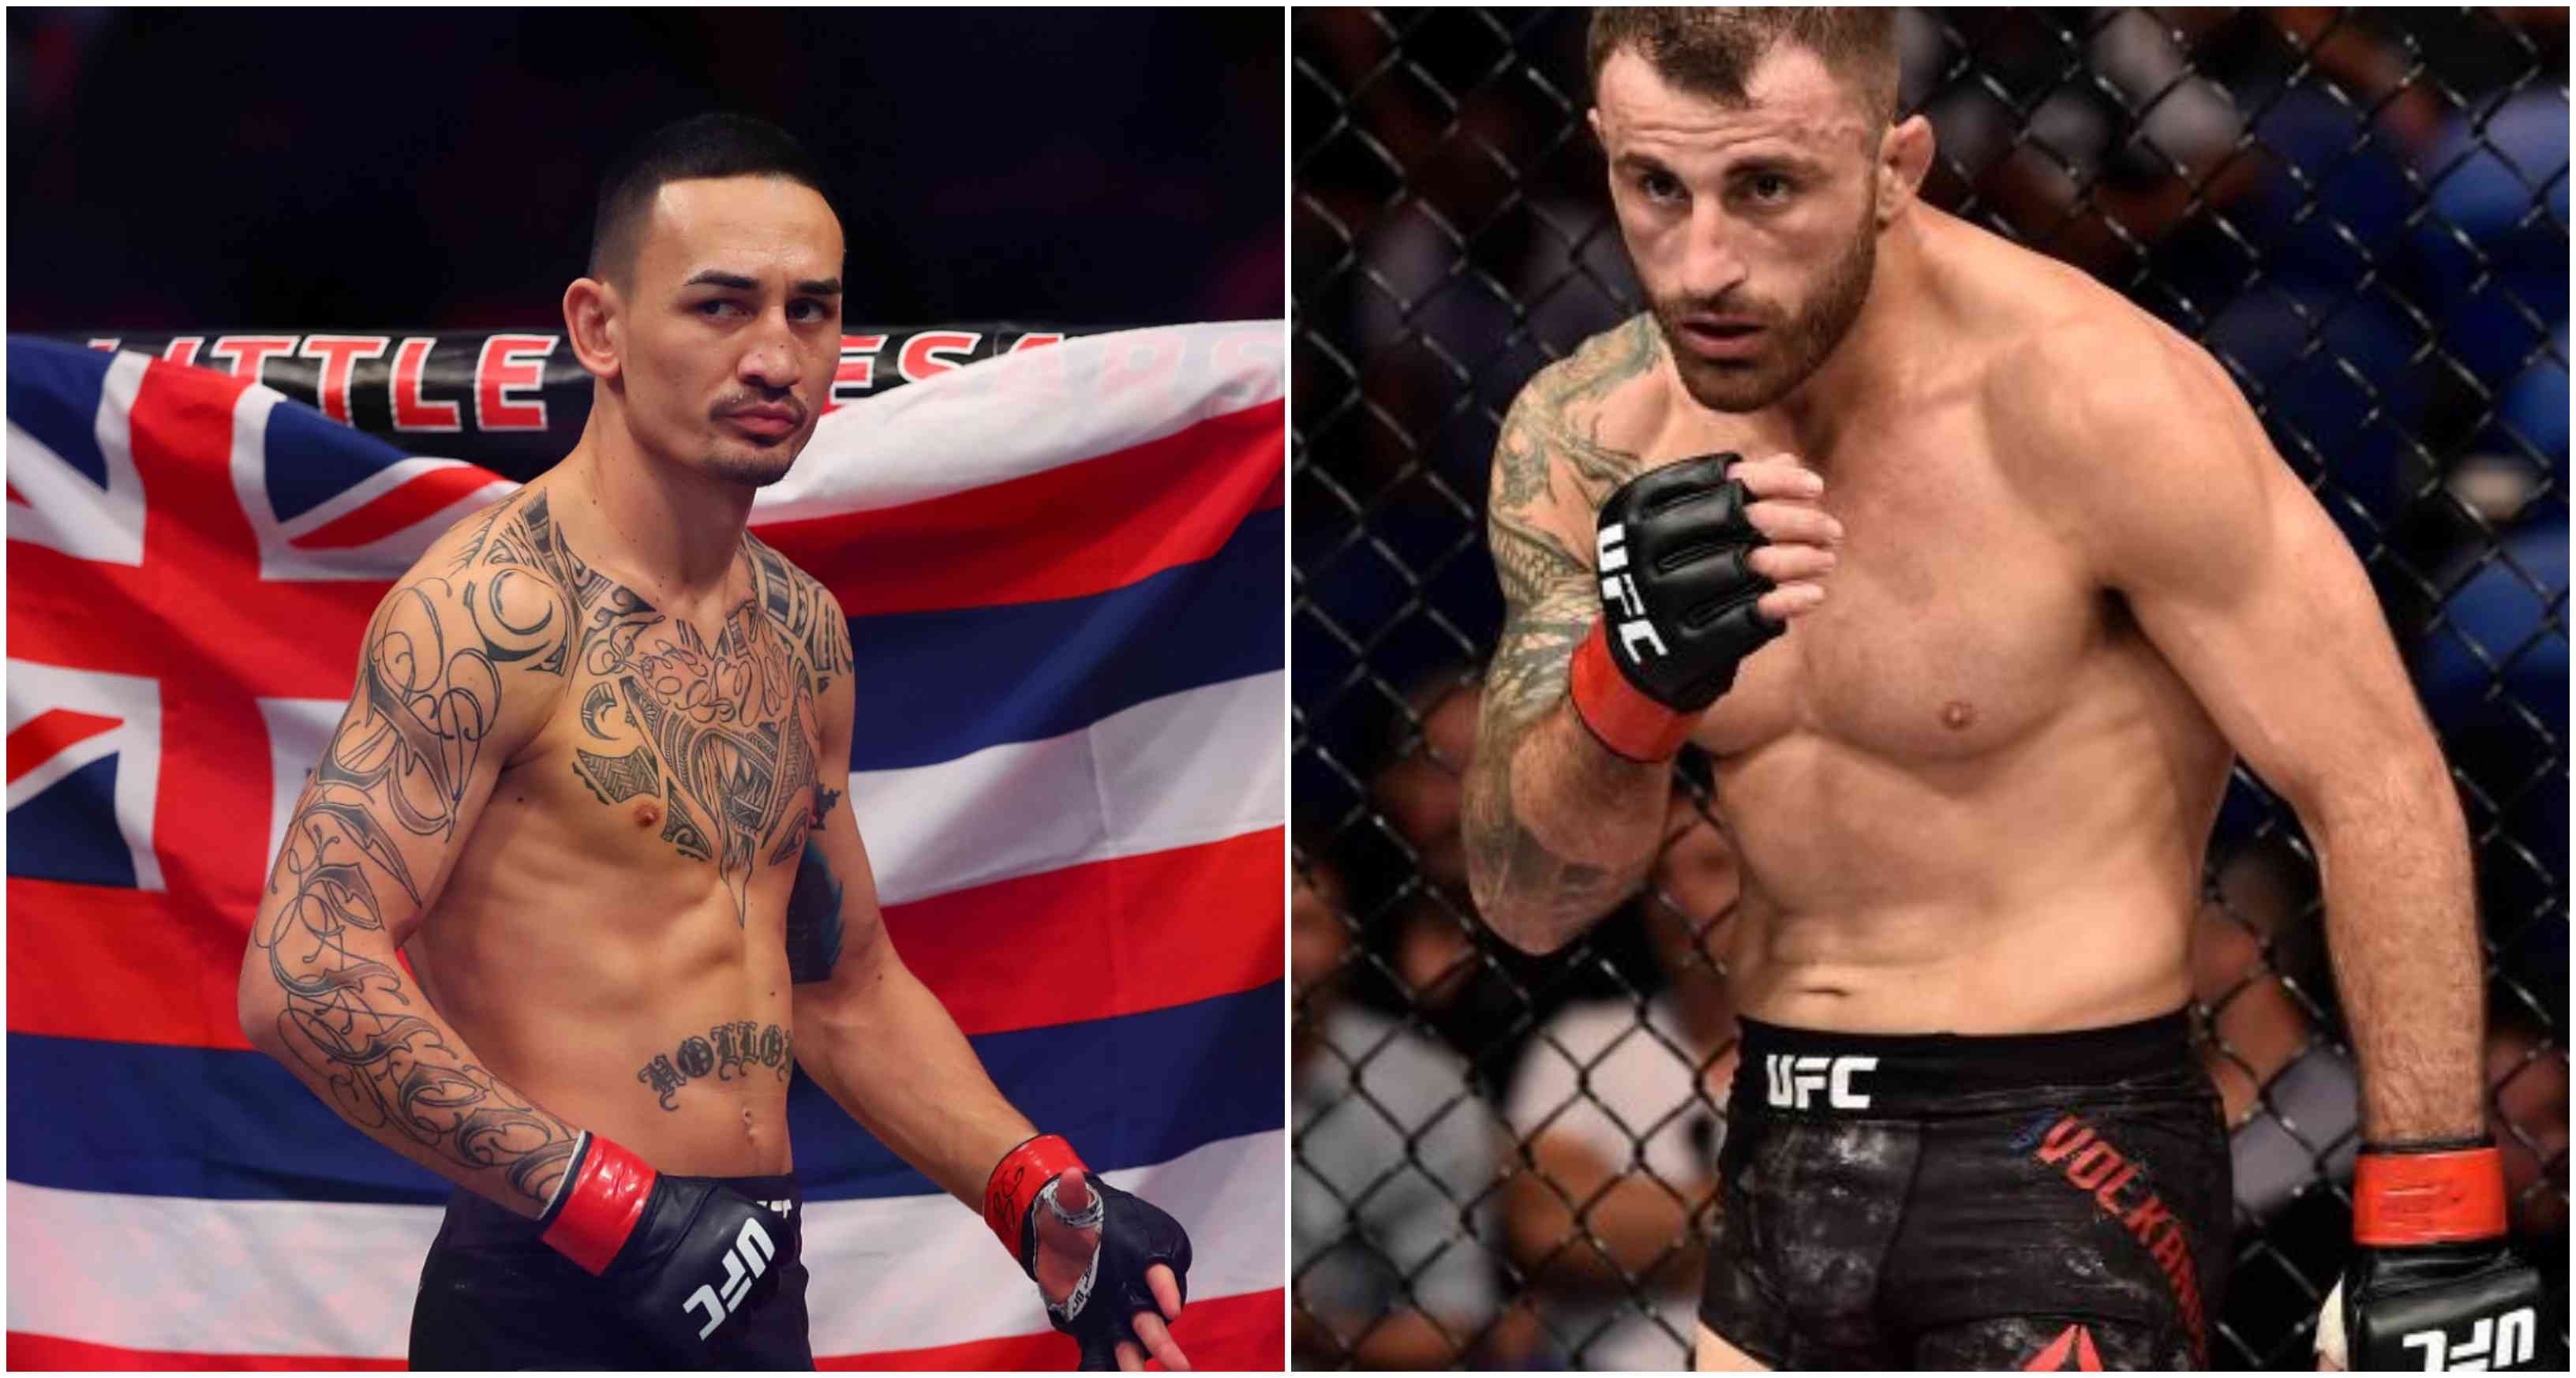 Max Holloway says UFC 243 fight against Alex Volkanovski depends on doctors - Holloway